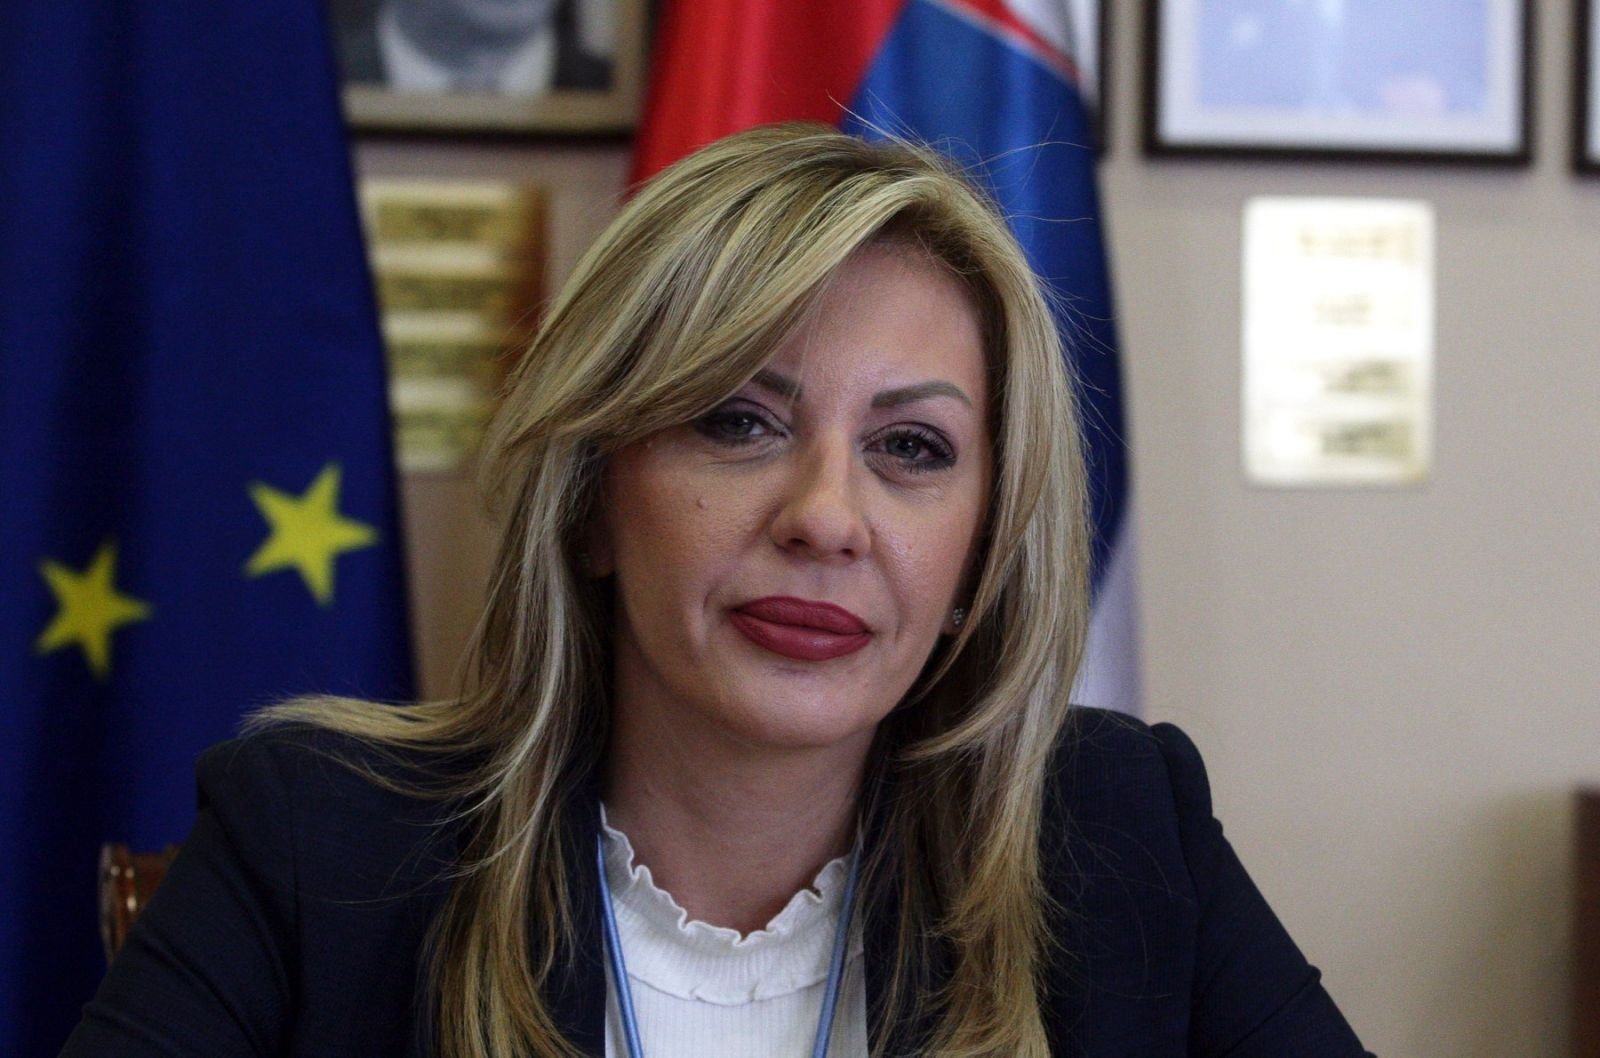 J. Joksimović: Serbia accepted real equal political participation of women